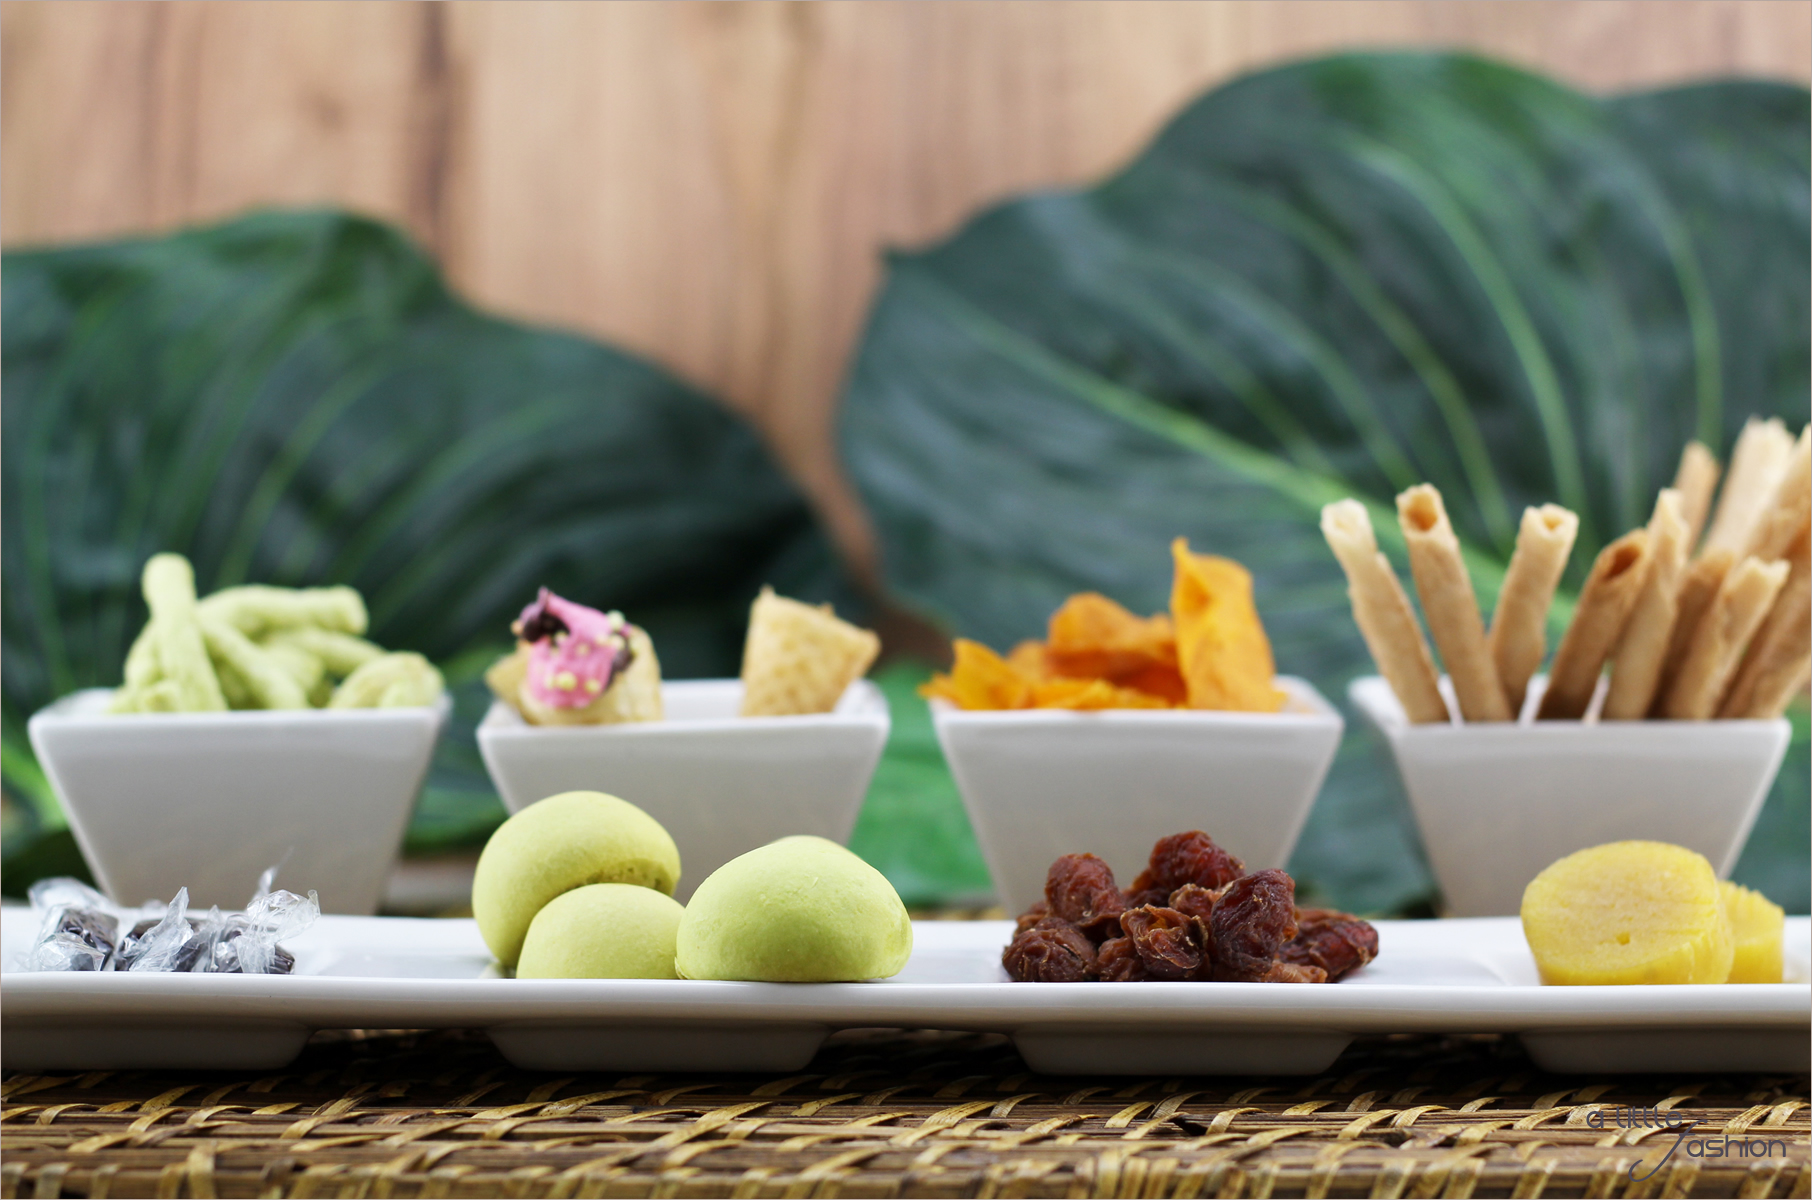 Von Moji und Durian  - Einblicke in Thailands Snack-Kultur  |  A Little Fashion  |  https://www.filizity.com/food/von-moji-und-durian-einblicke-in-thailands-snack-kultur